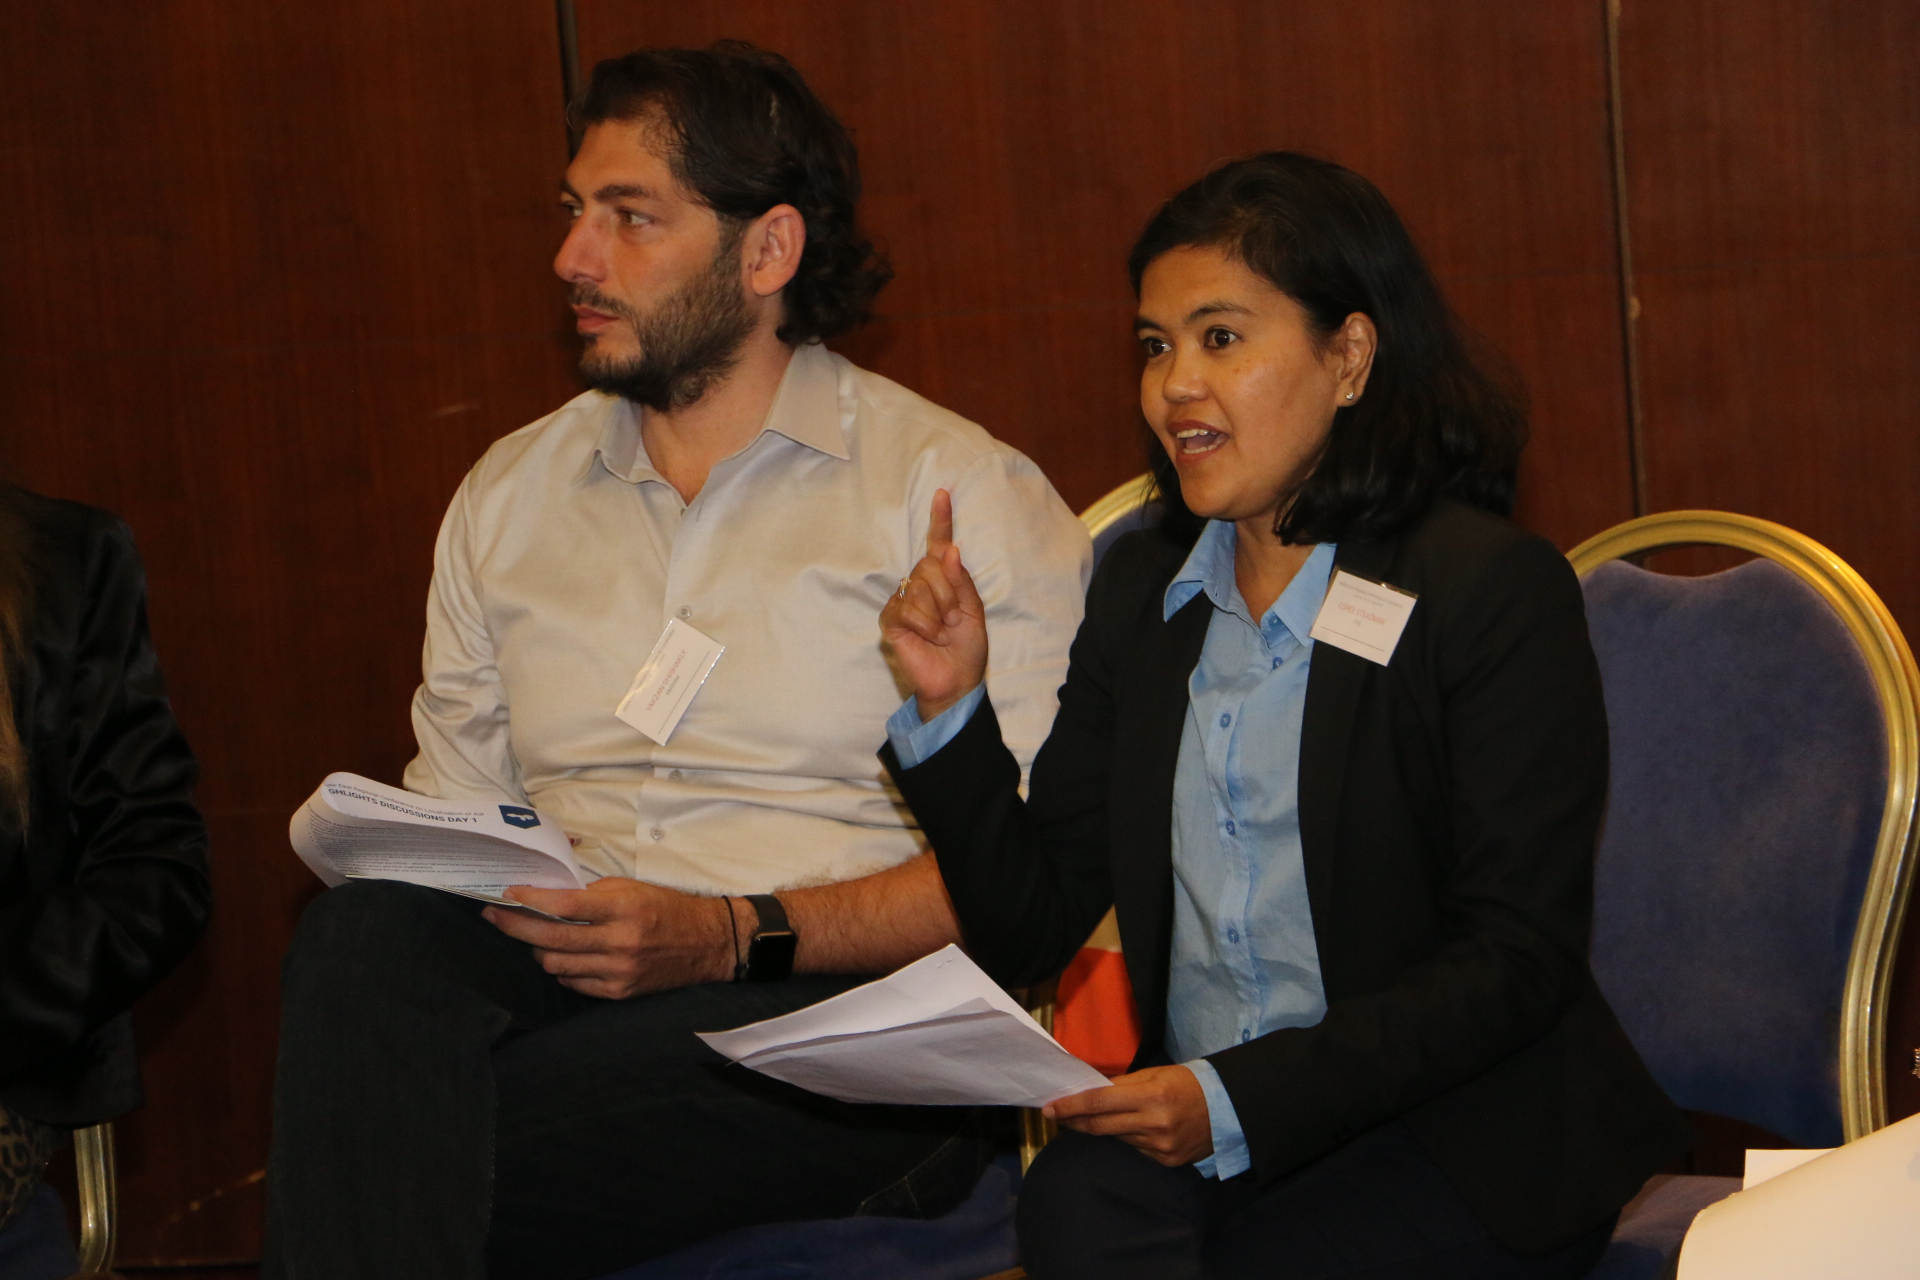 Middle East Regional Conference on Localisation - Day 2 - Group Discussions